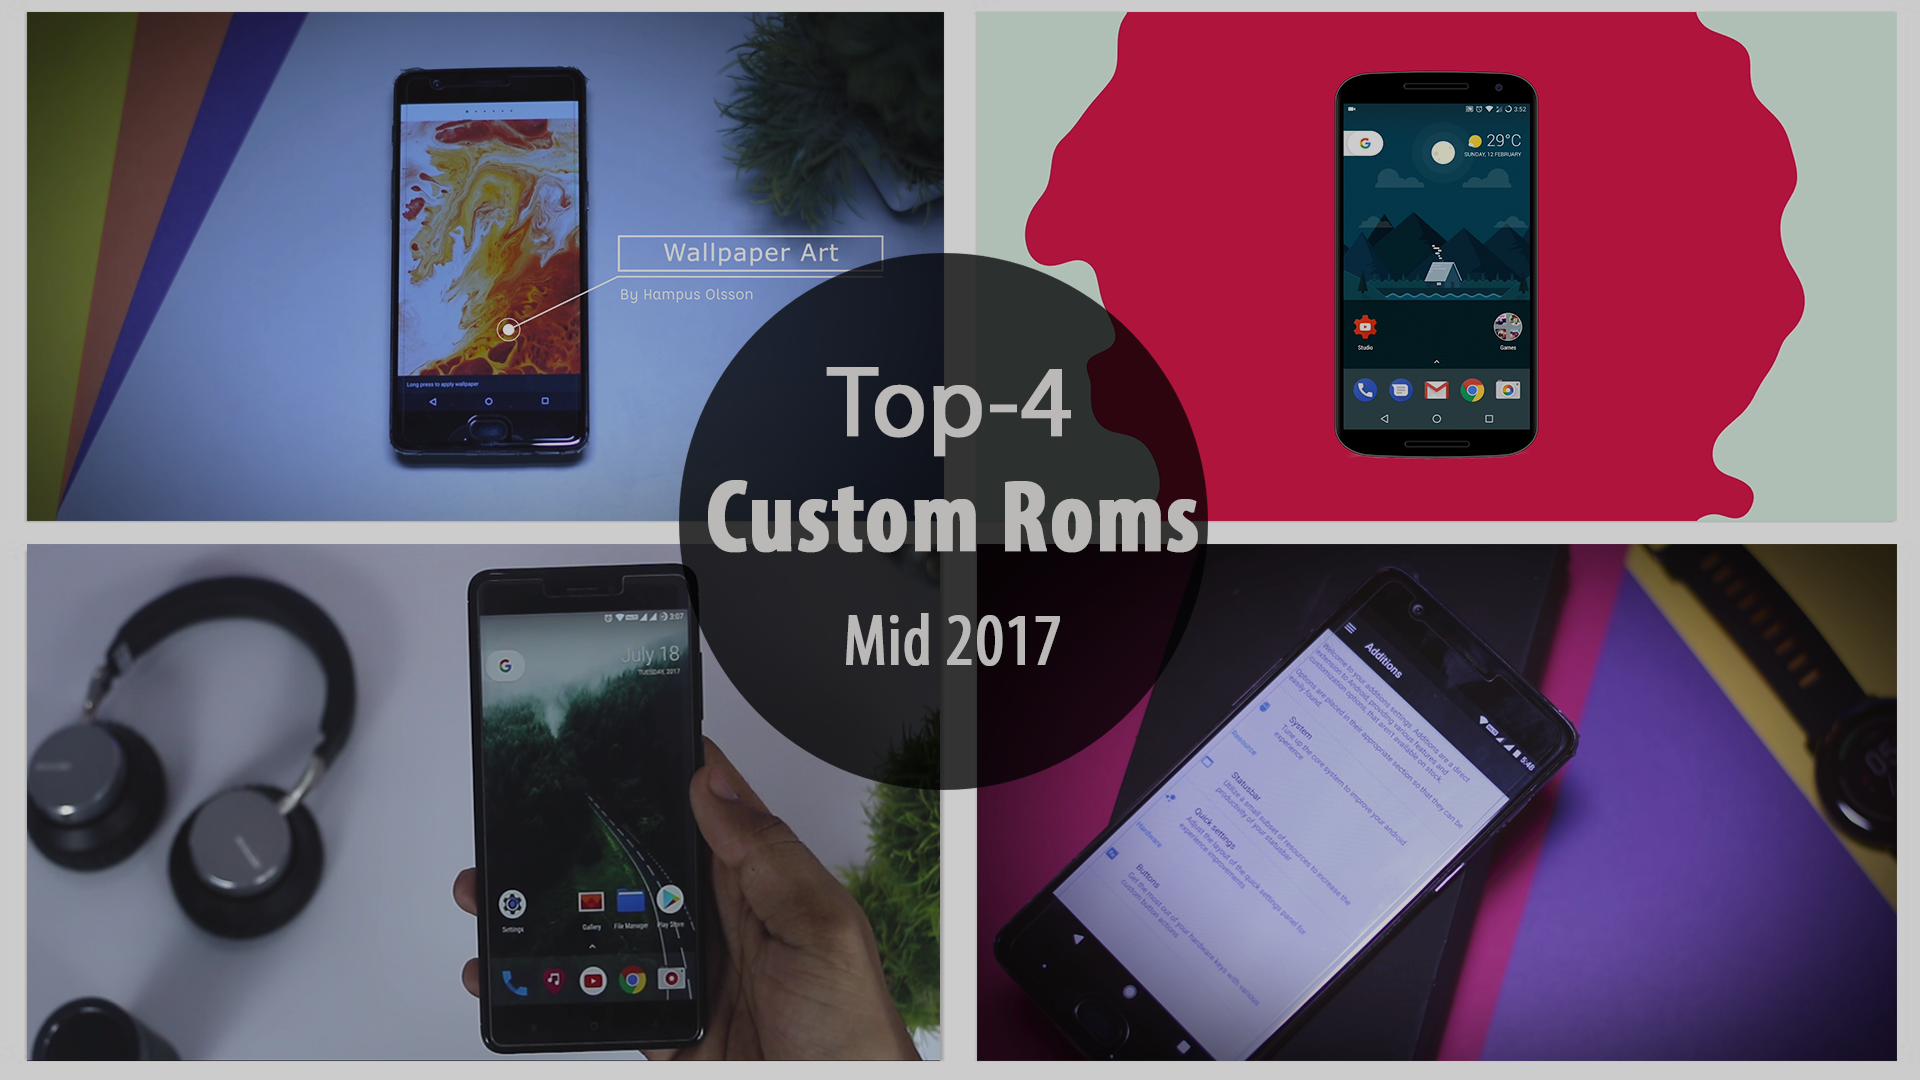 Best Custom Roms 2017